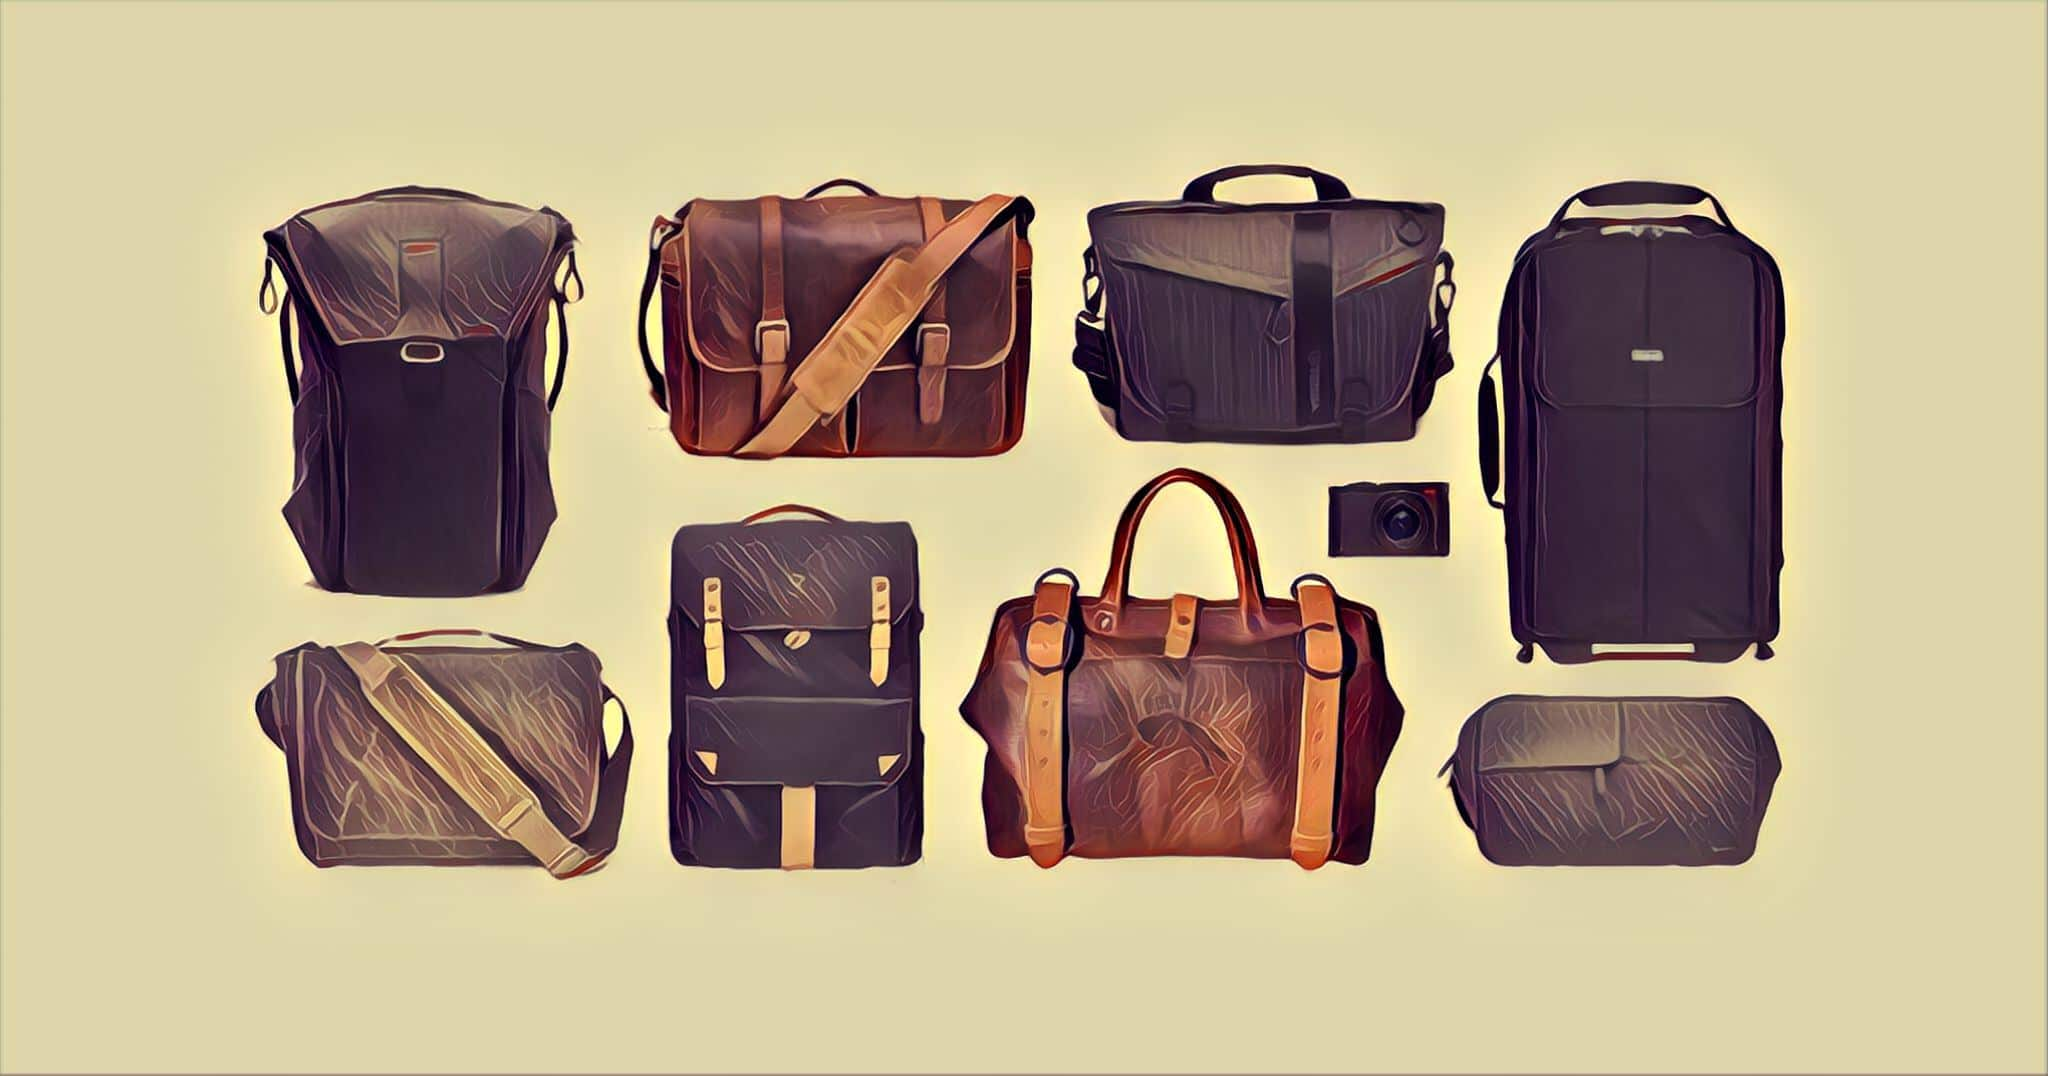 453b2dd9bc29 💼 Best Camera Bag in 2019